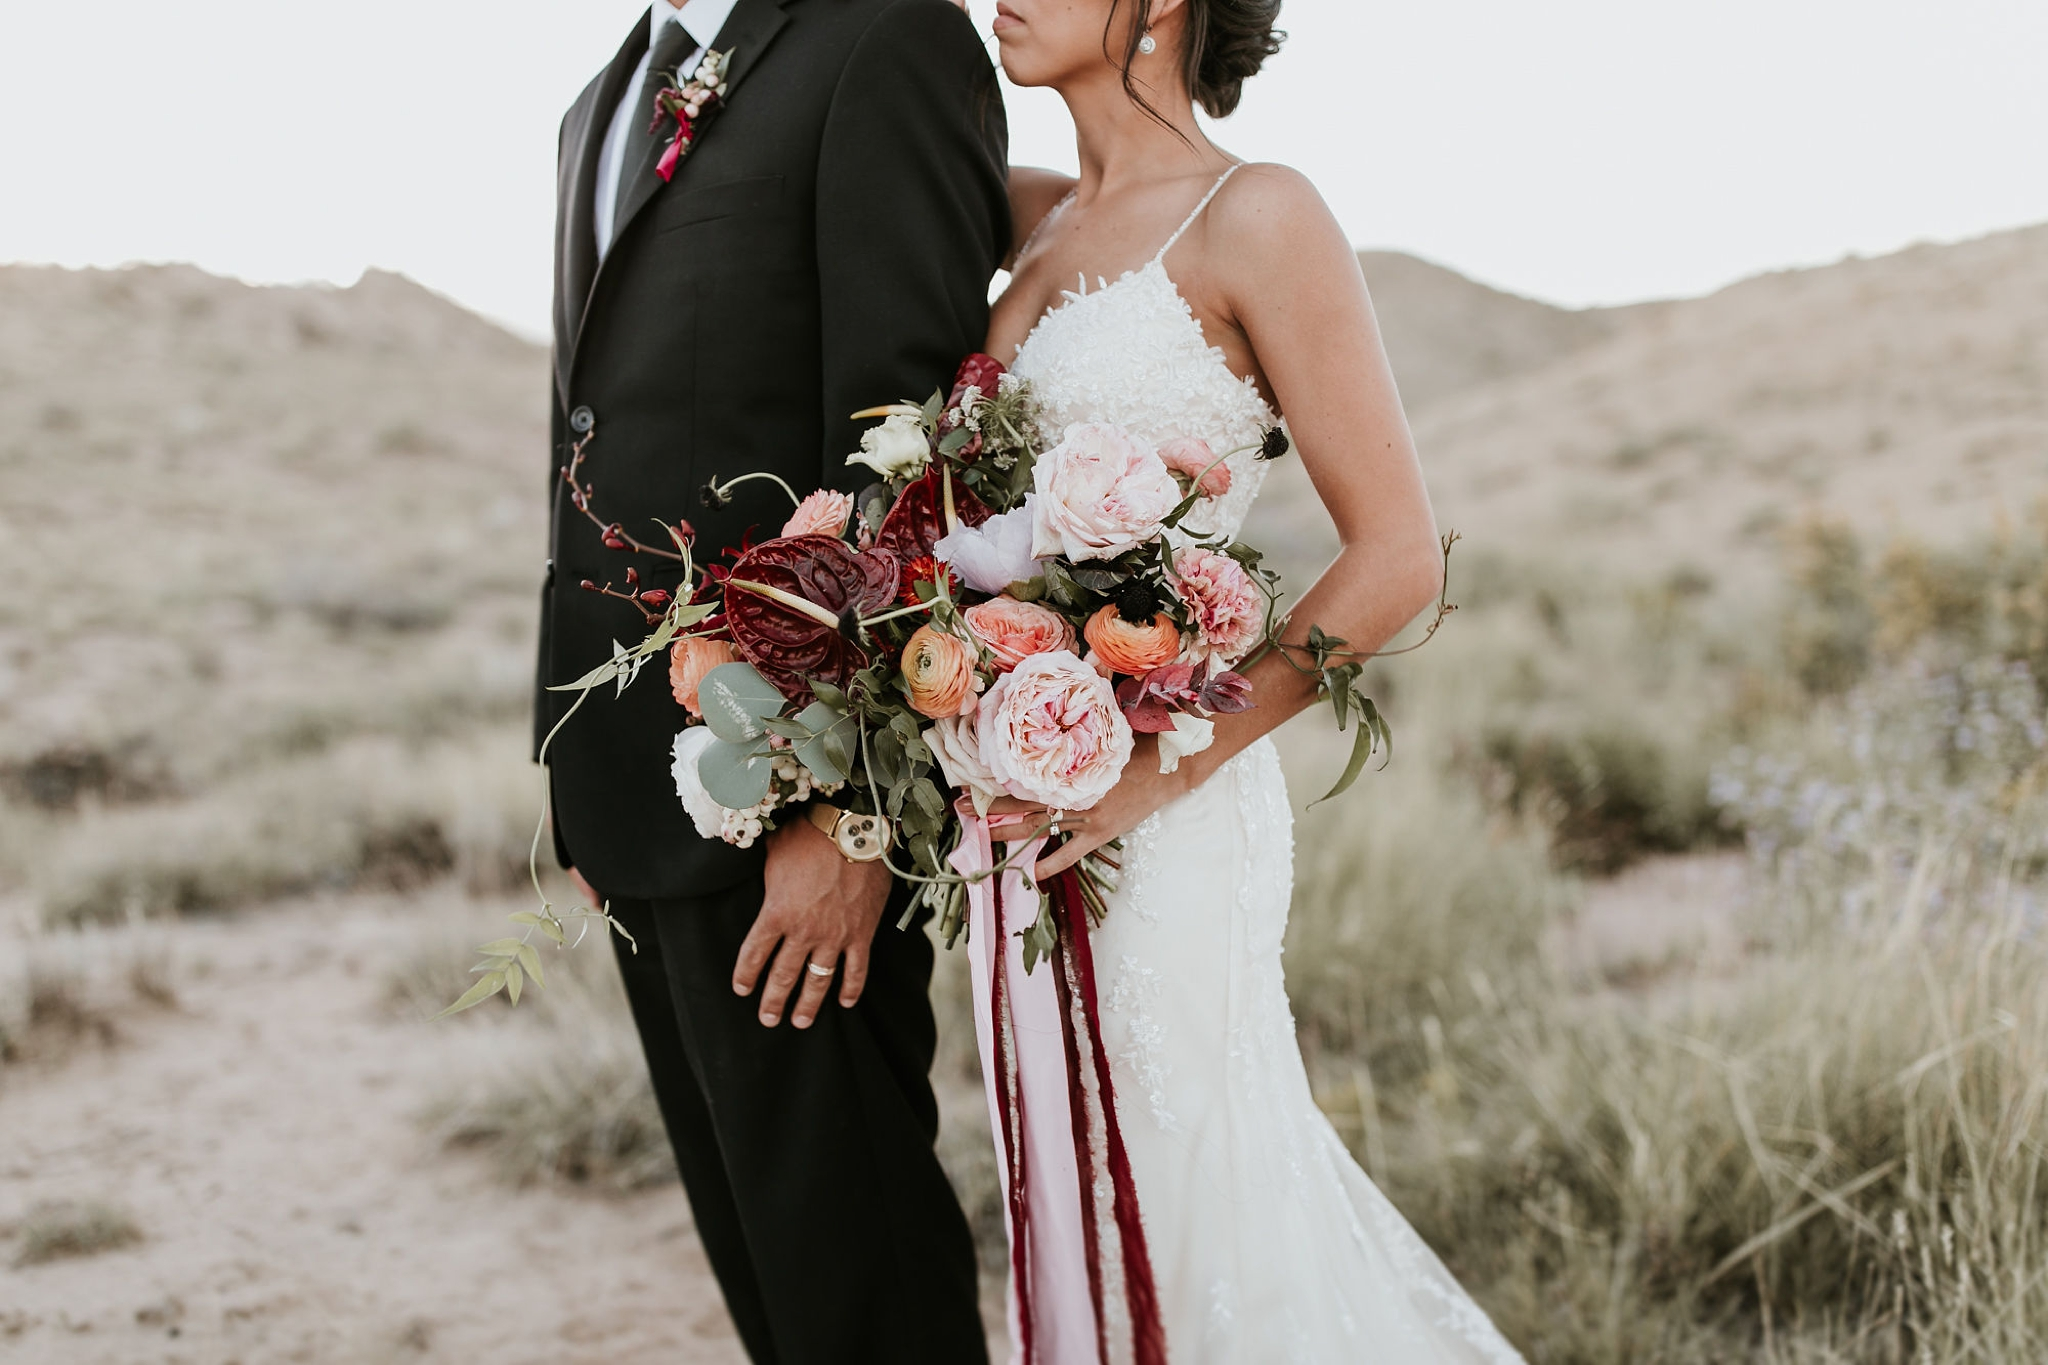 Alicia+lucia+photography+-+albuquerque+wedding+photographer+-+santa+fe+wedding+photography+-+new+mexico+wedding+photographer+-+new+mexico+florist+-+wedding+florist+-+renegade+floral_0001.jpg